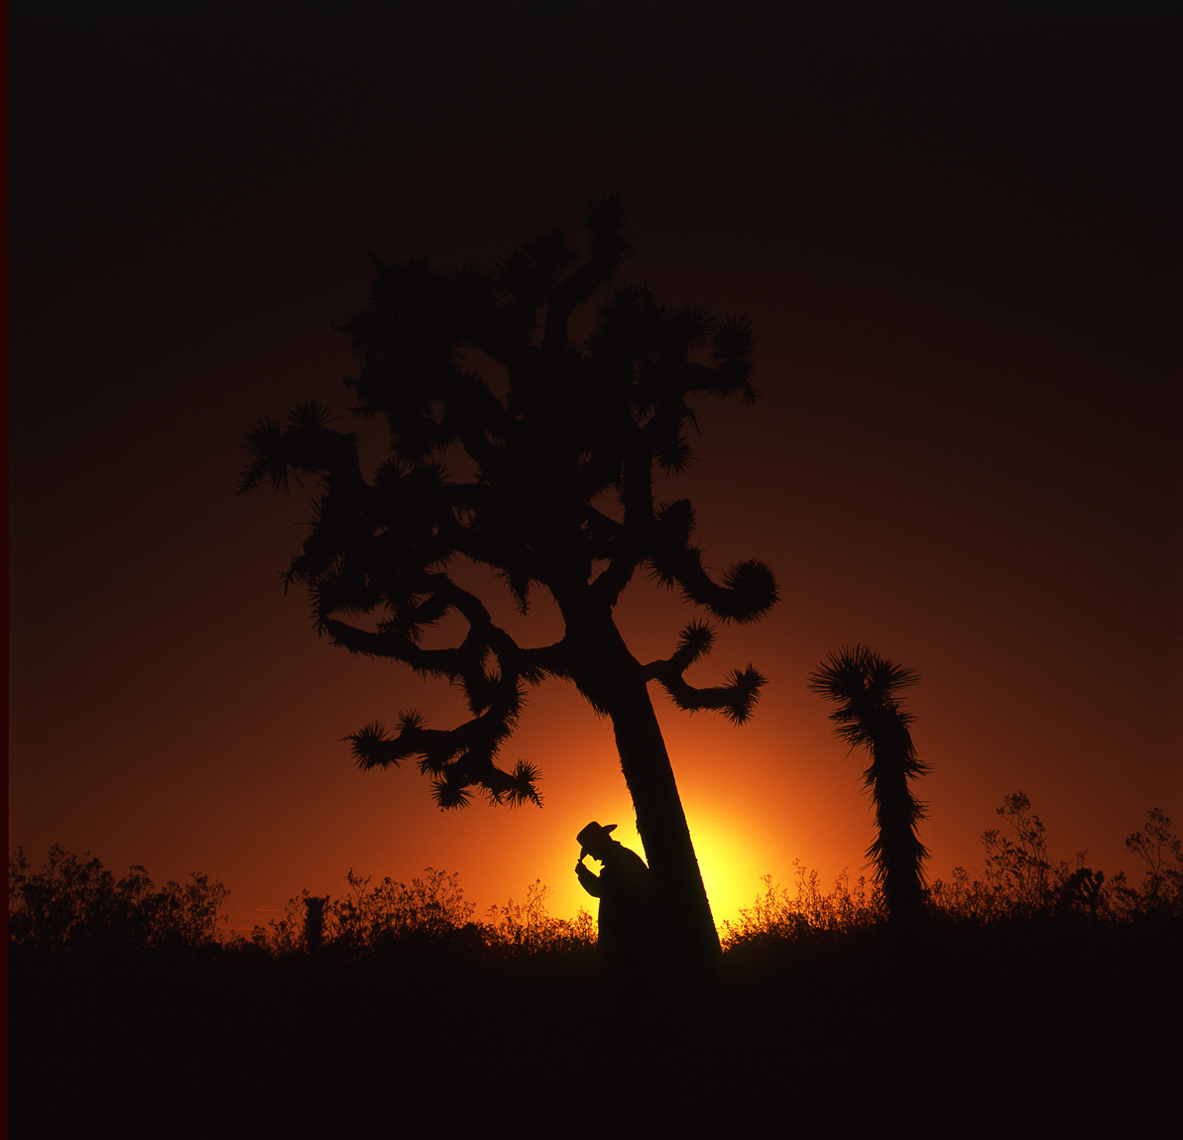 Scharetg_Joshua-Tree-Self-Portrait.jpg